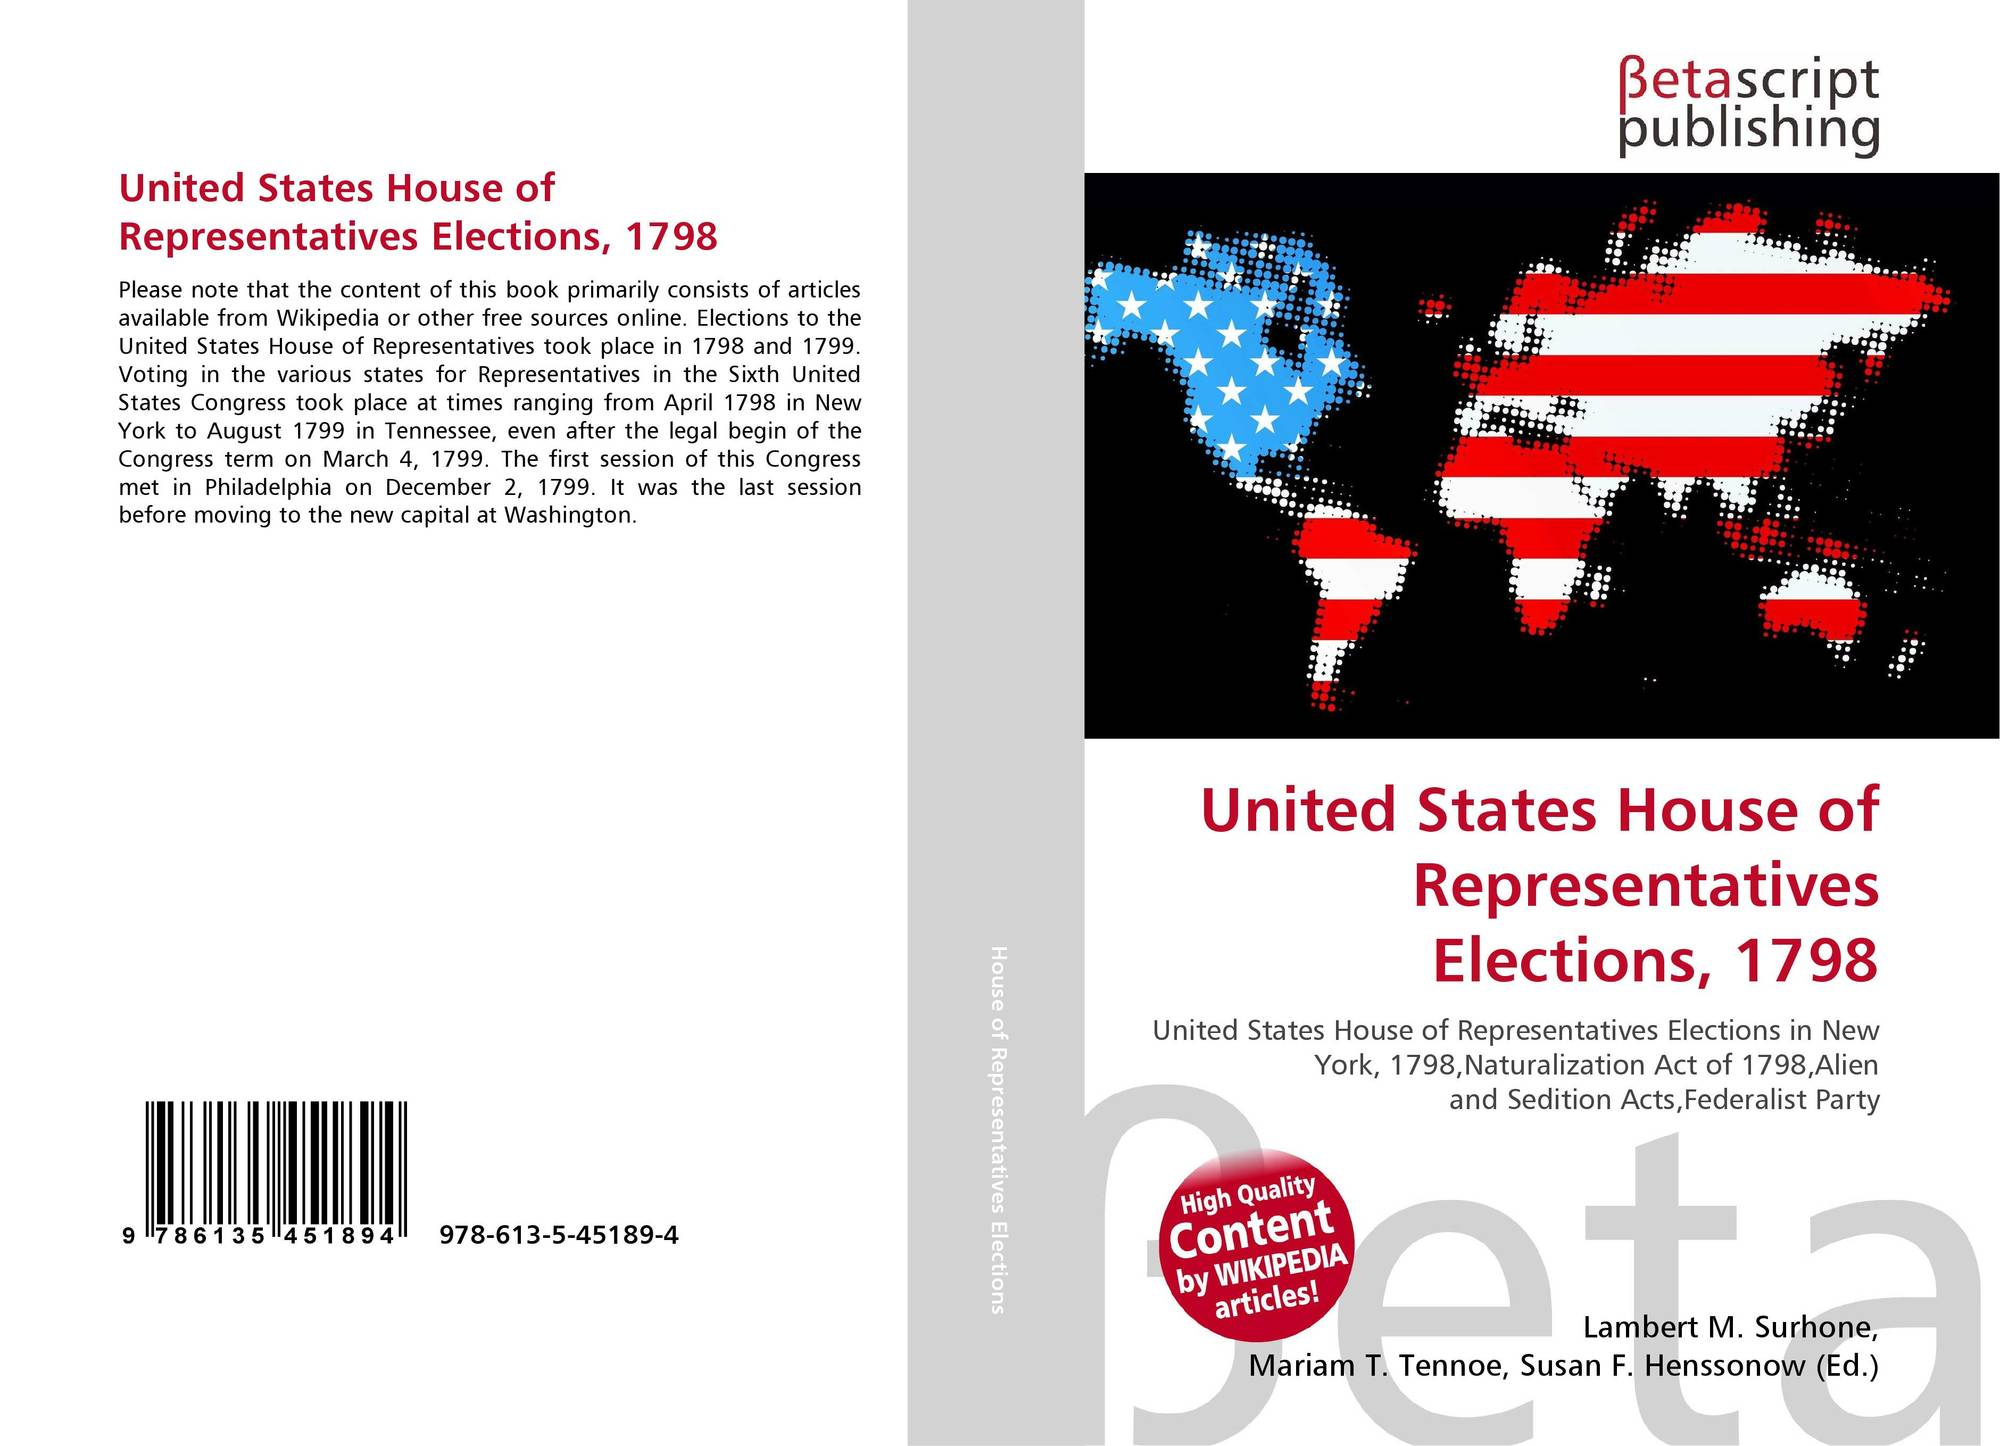 1798 and 1799 United States House of Representatives elections